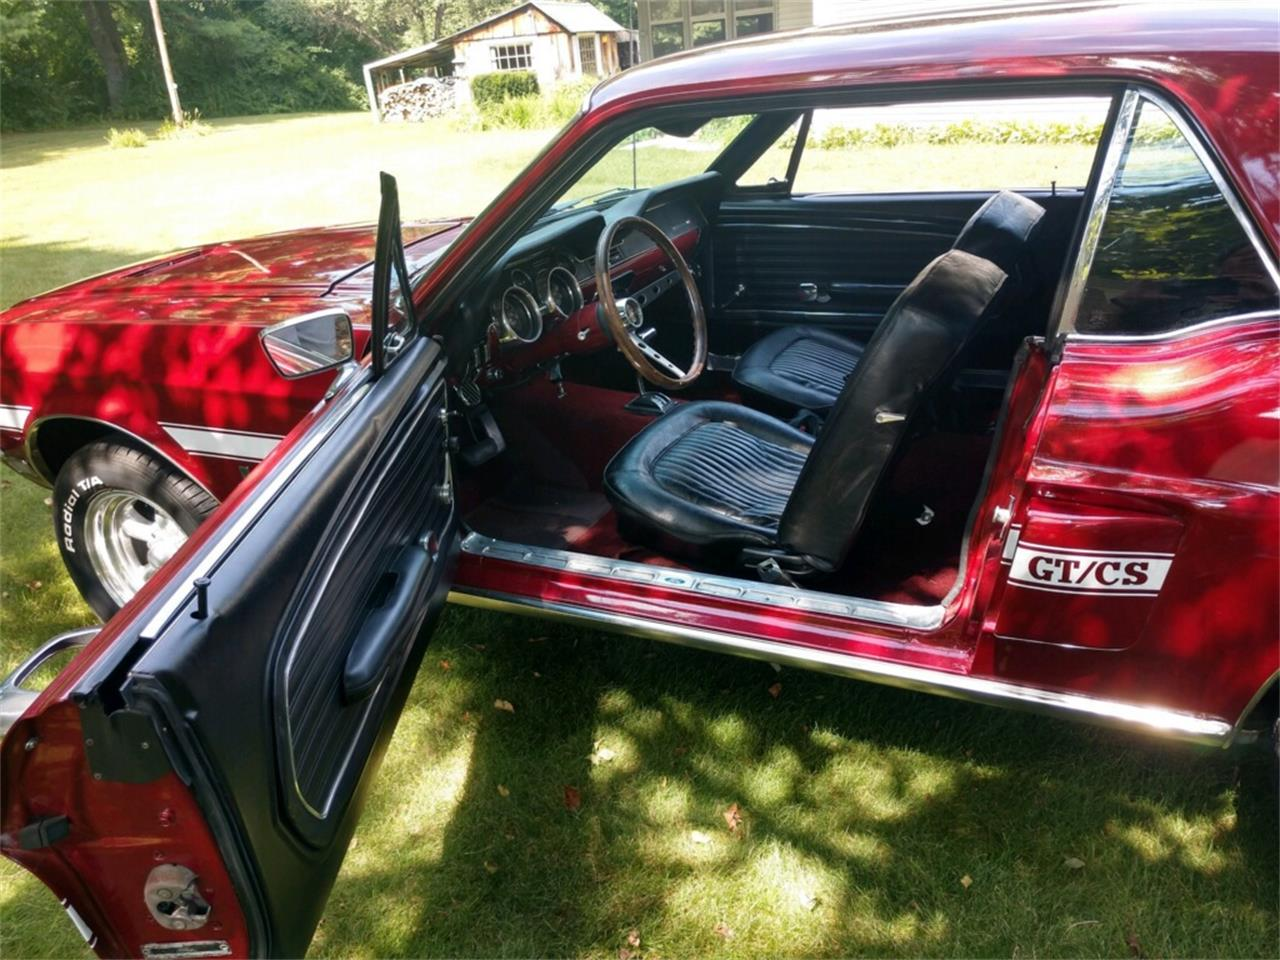 1968 Ford Mustang GT/CS (California Special) (CC-1247471) for sale in Westfield, Massachusetts